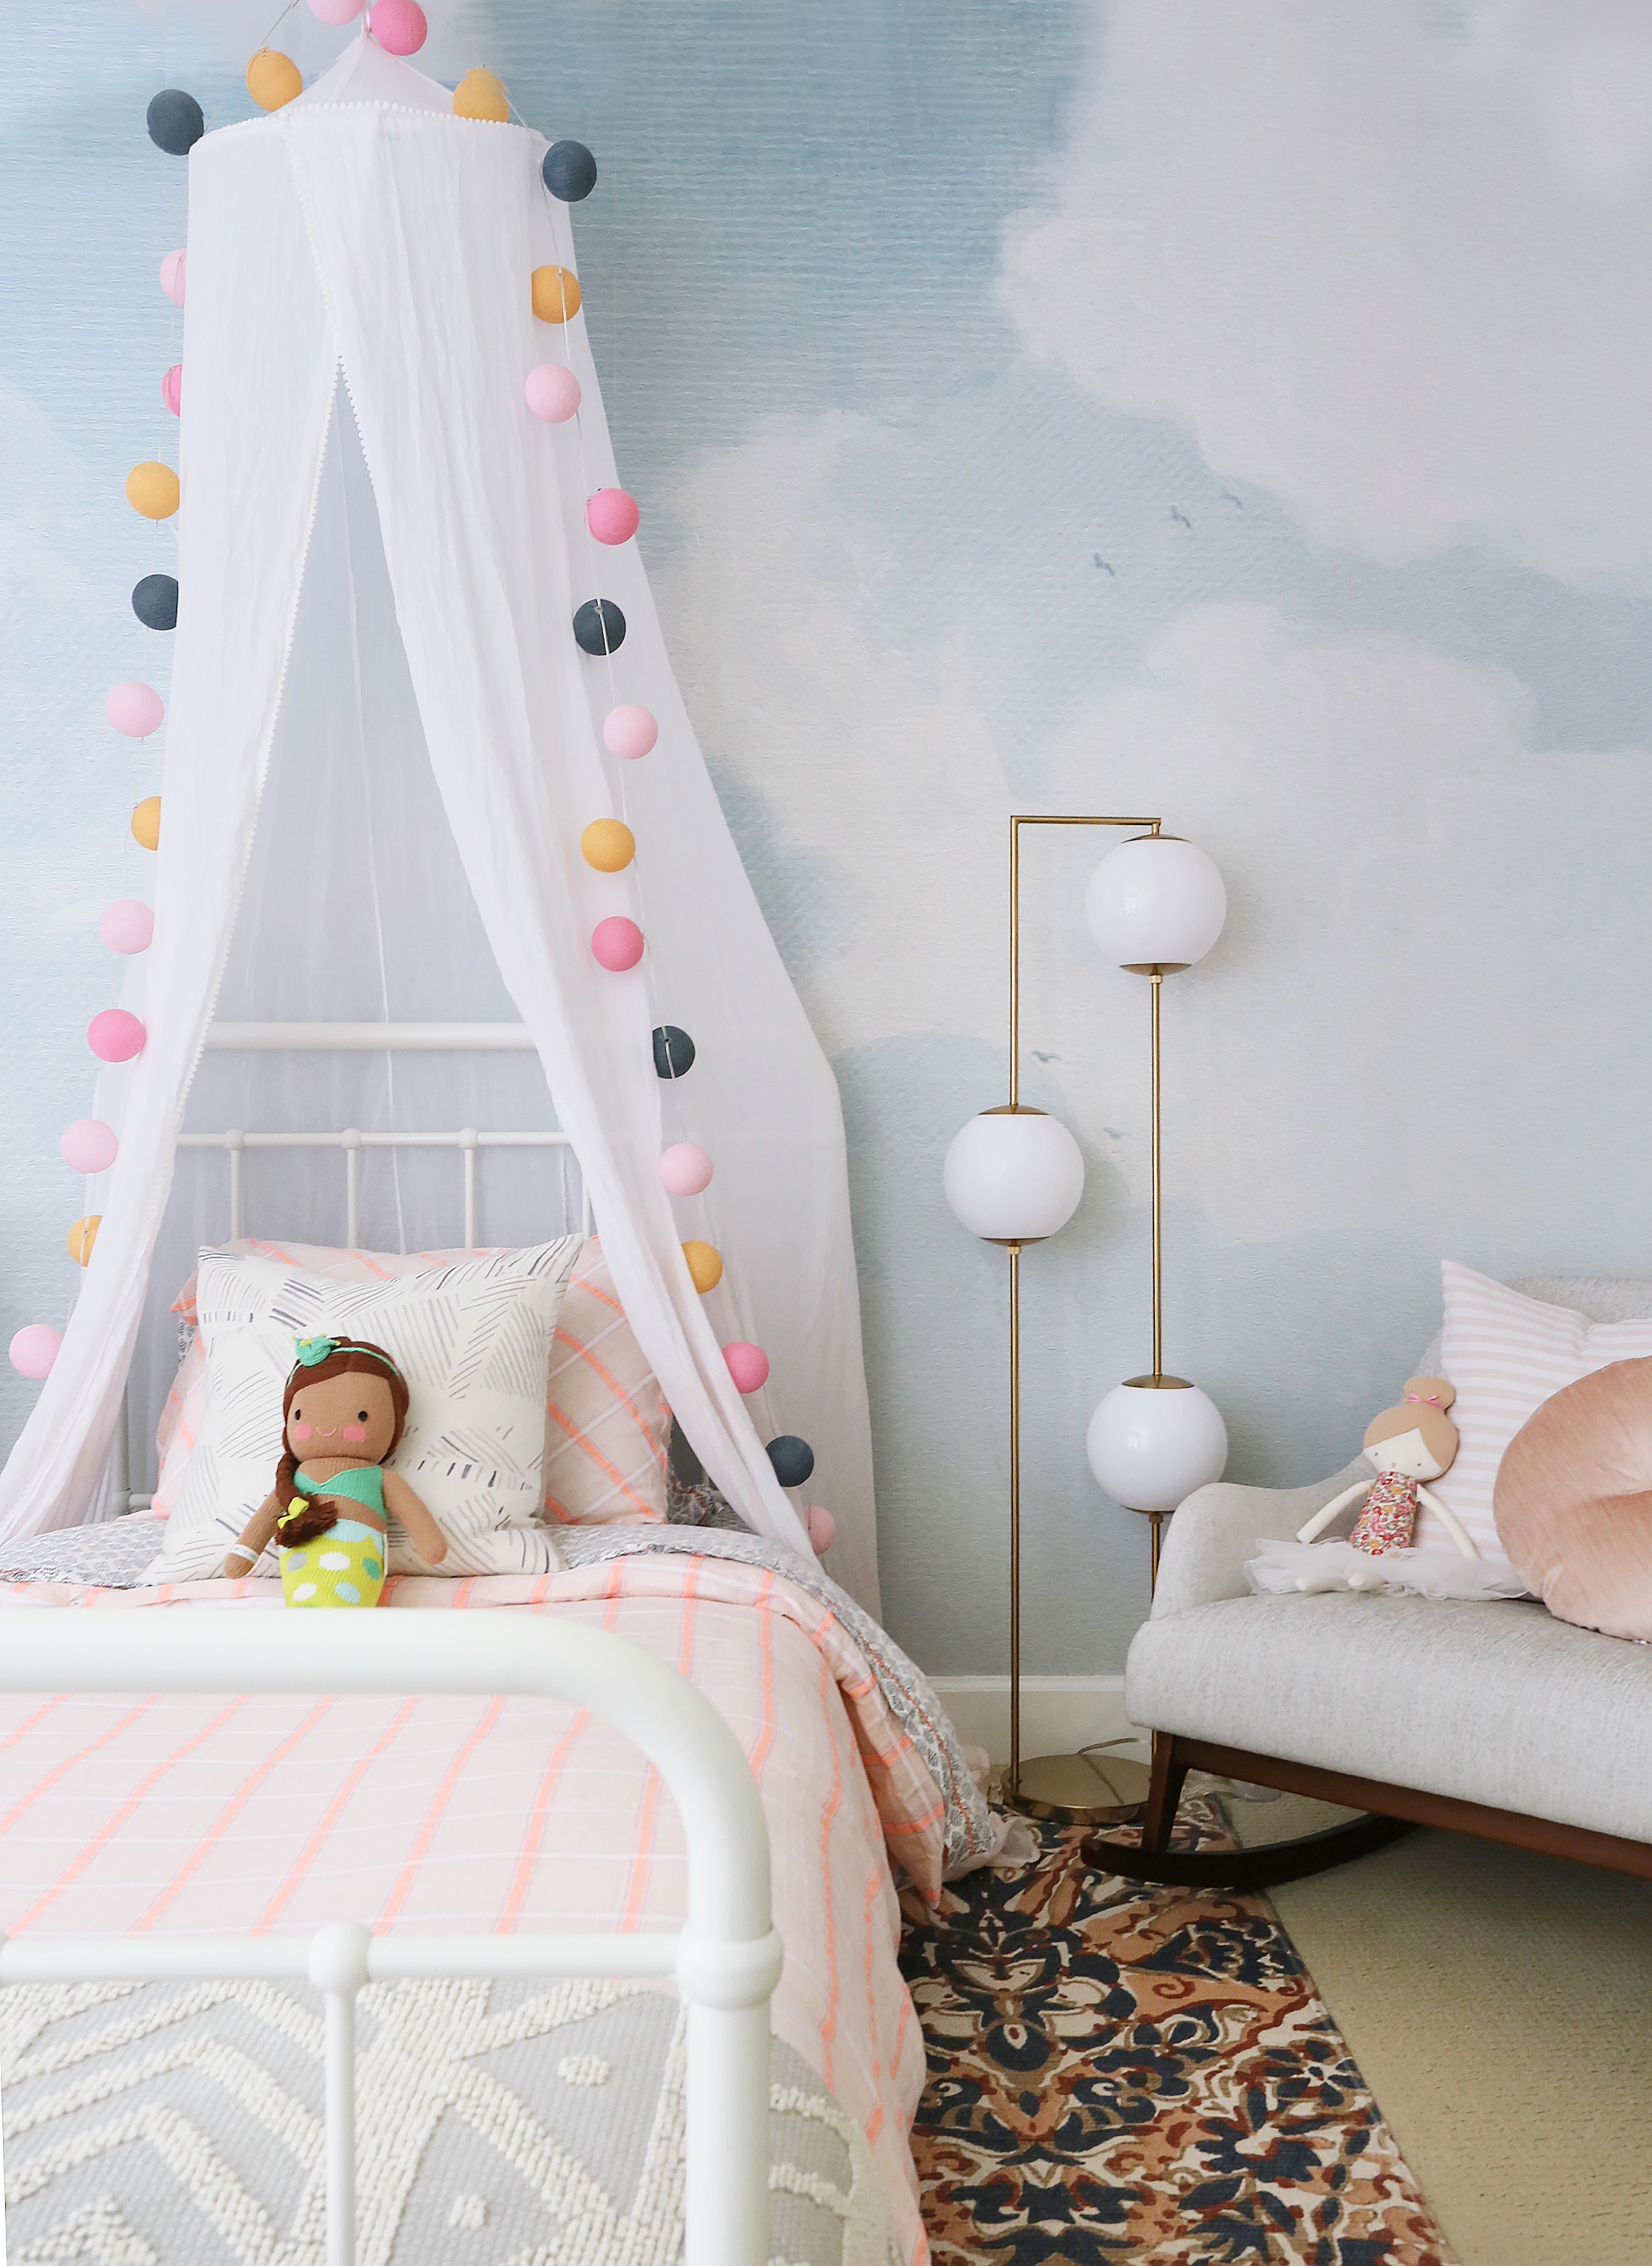 Whimsical Girl's Room with Cloud Mural